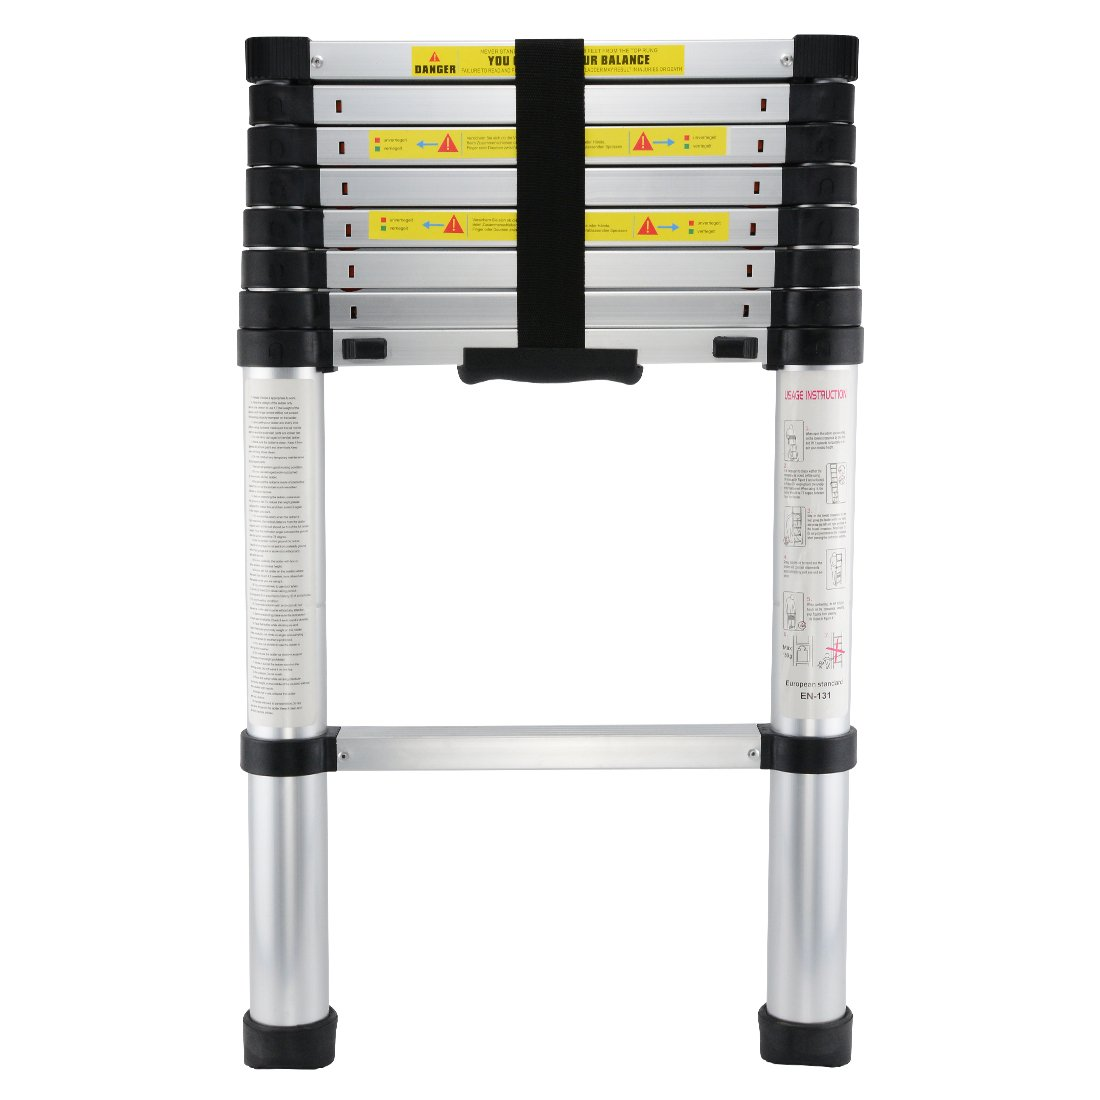 [Upgraded] 8.5ft Telescopic Extension Ladder with Spring Loaded Locking Mechanism Non-Slip - 330 lb Max